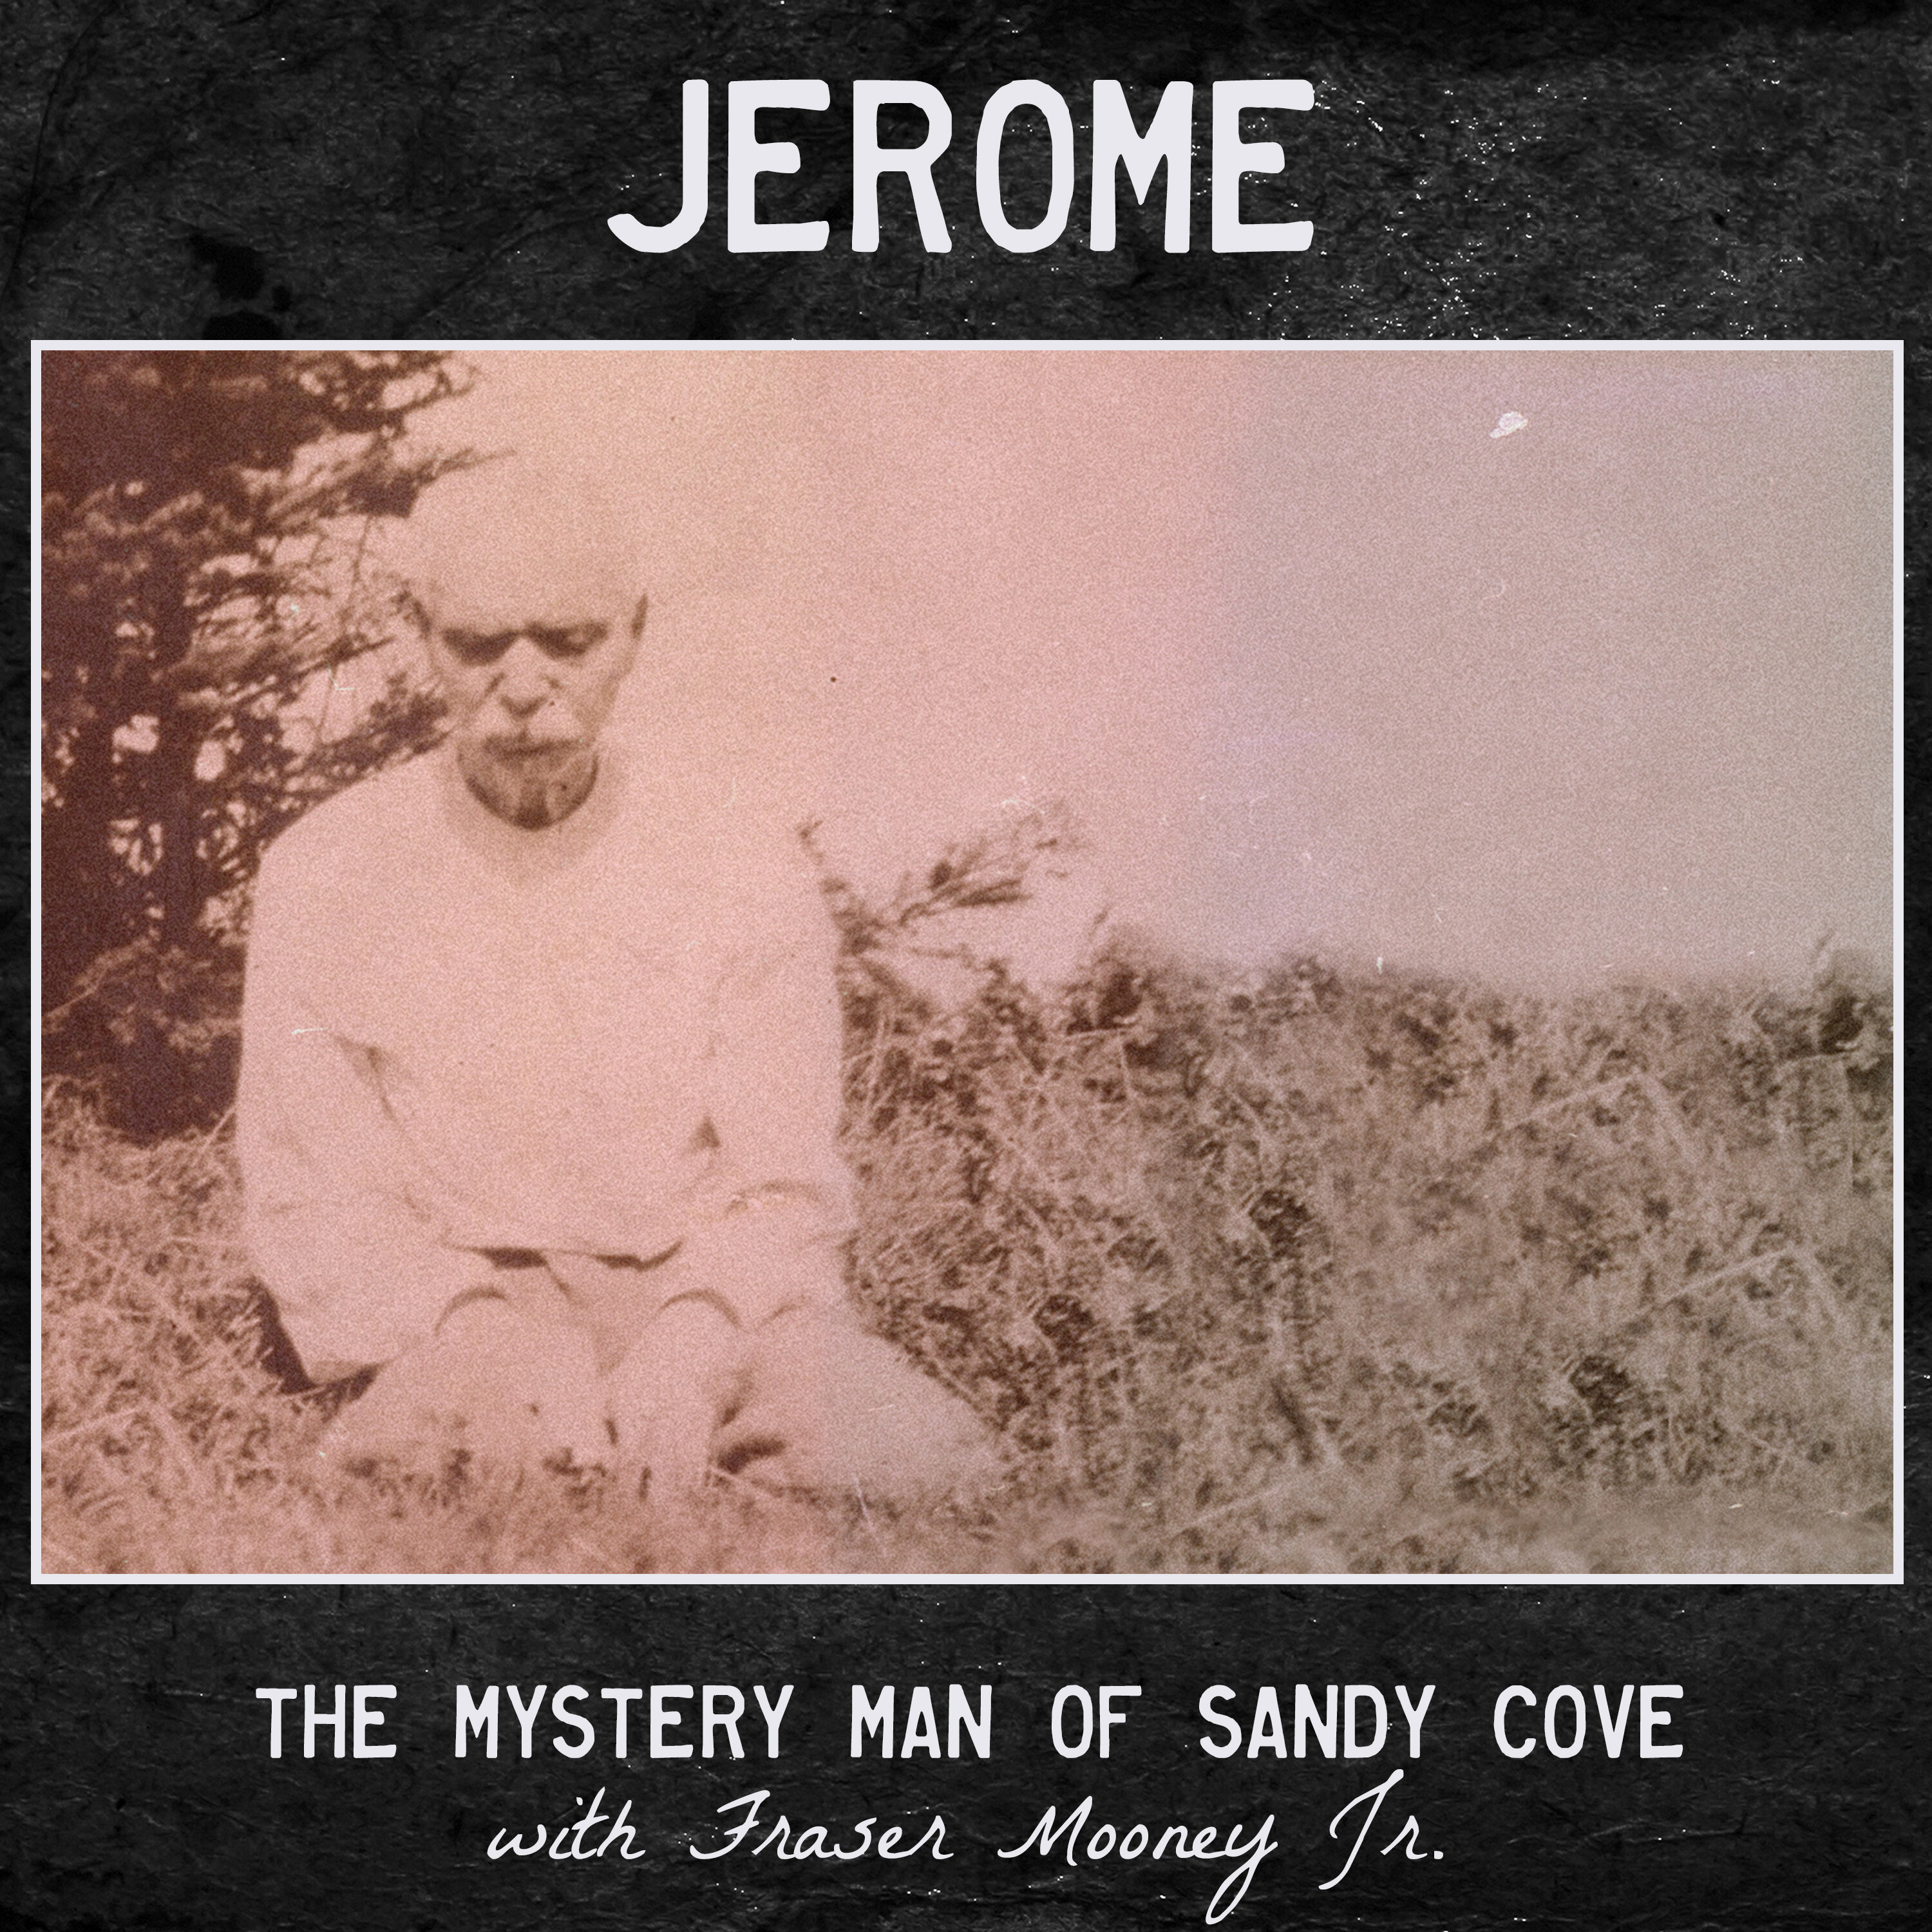 Jerome, the Mystery Man of Sandy Cove (with Fraser Mooney Jr.)